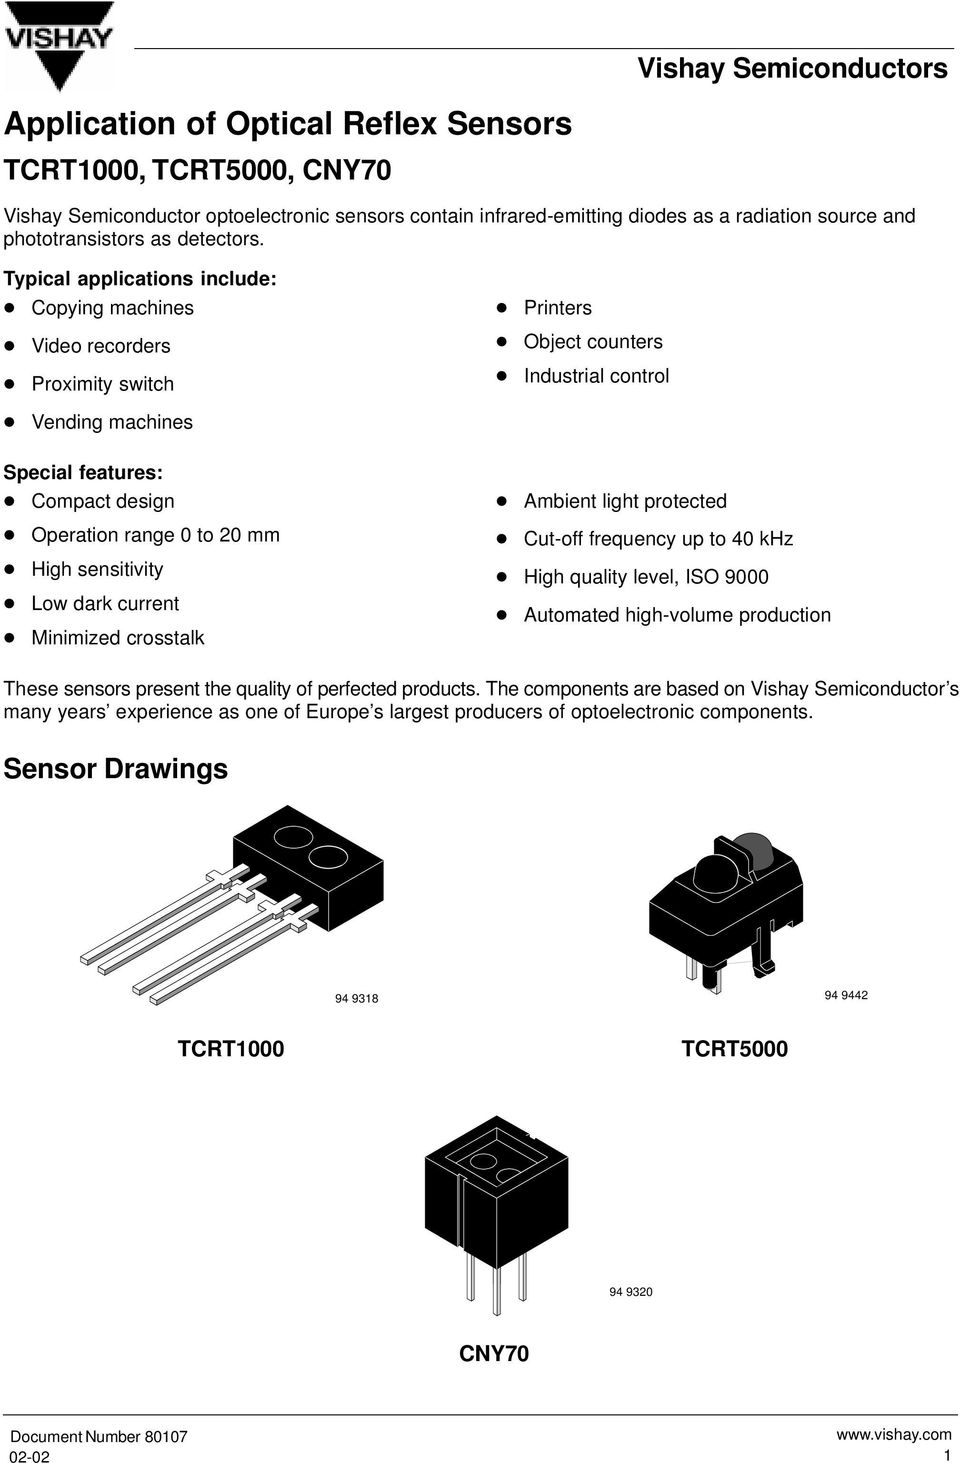 Application Of Optical Reflex Sensors Pdf How To Set Up A Photo Interrupter Or Slotted Switch On The Mm High Sensitivity Low Dark Current Minimized Crosstalk Ambient Light Protected Cut Off Frequency